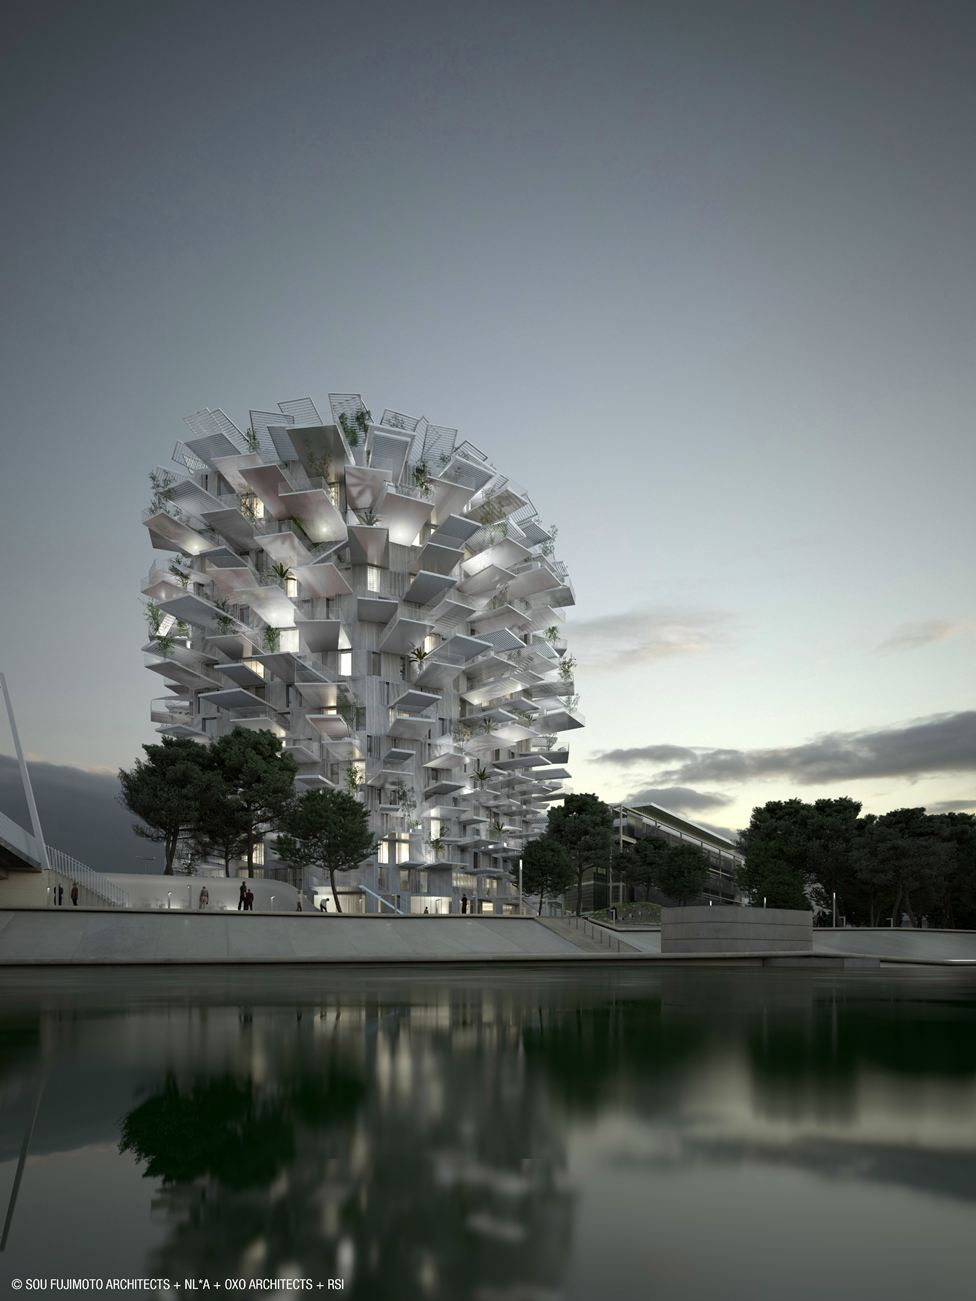 The White Tree by Sou Fujimoto Architects, Nicolas Laisné Associés and Manal Rachdi Oxo Architects